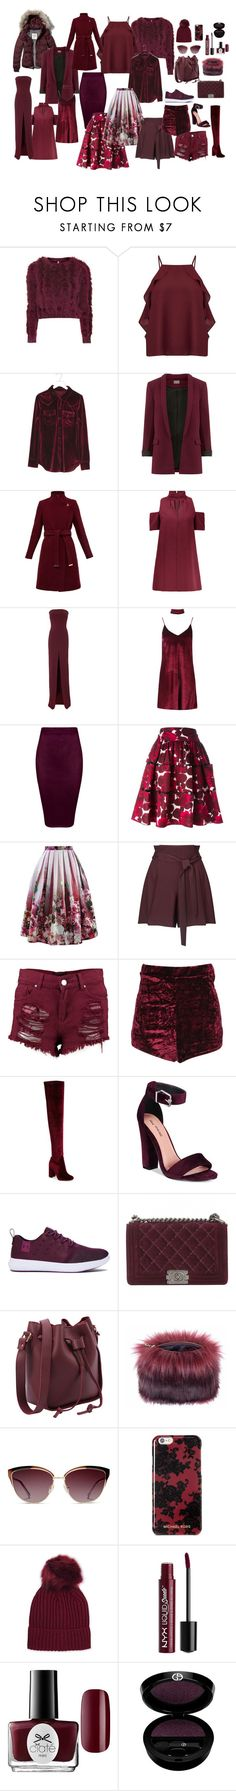 """purple 3"" by azra-99 ❤ liked on Polyvore featuring Topshop, Miss Selfridge, Abercrombie & Fitch, Ted Baker, Solace, Boohoo, Marc Jacobs, Chicwish, Jeffrey Campbell and Call it SPRING"